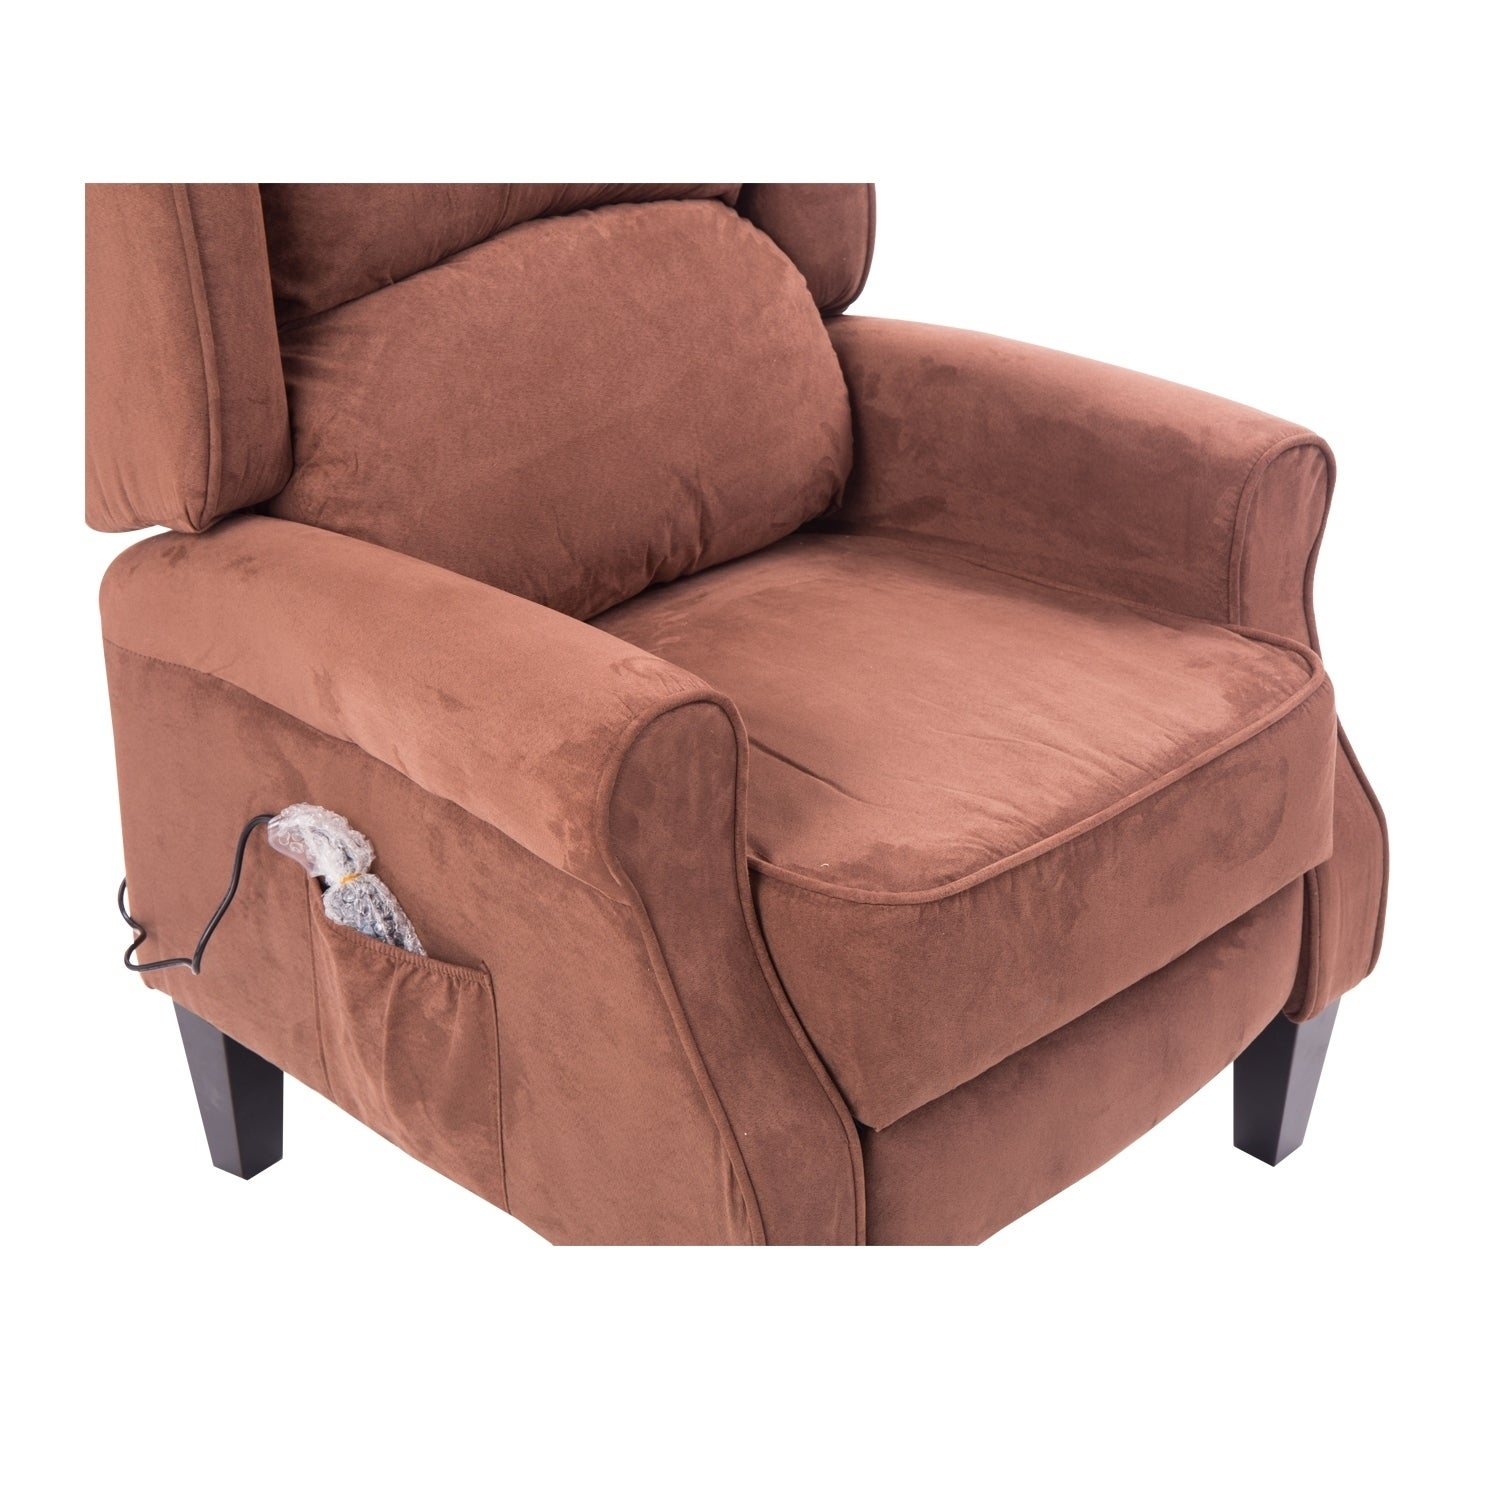 HomCom Brown Suede Heated Vibrating Massage Recliner (Fau.